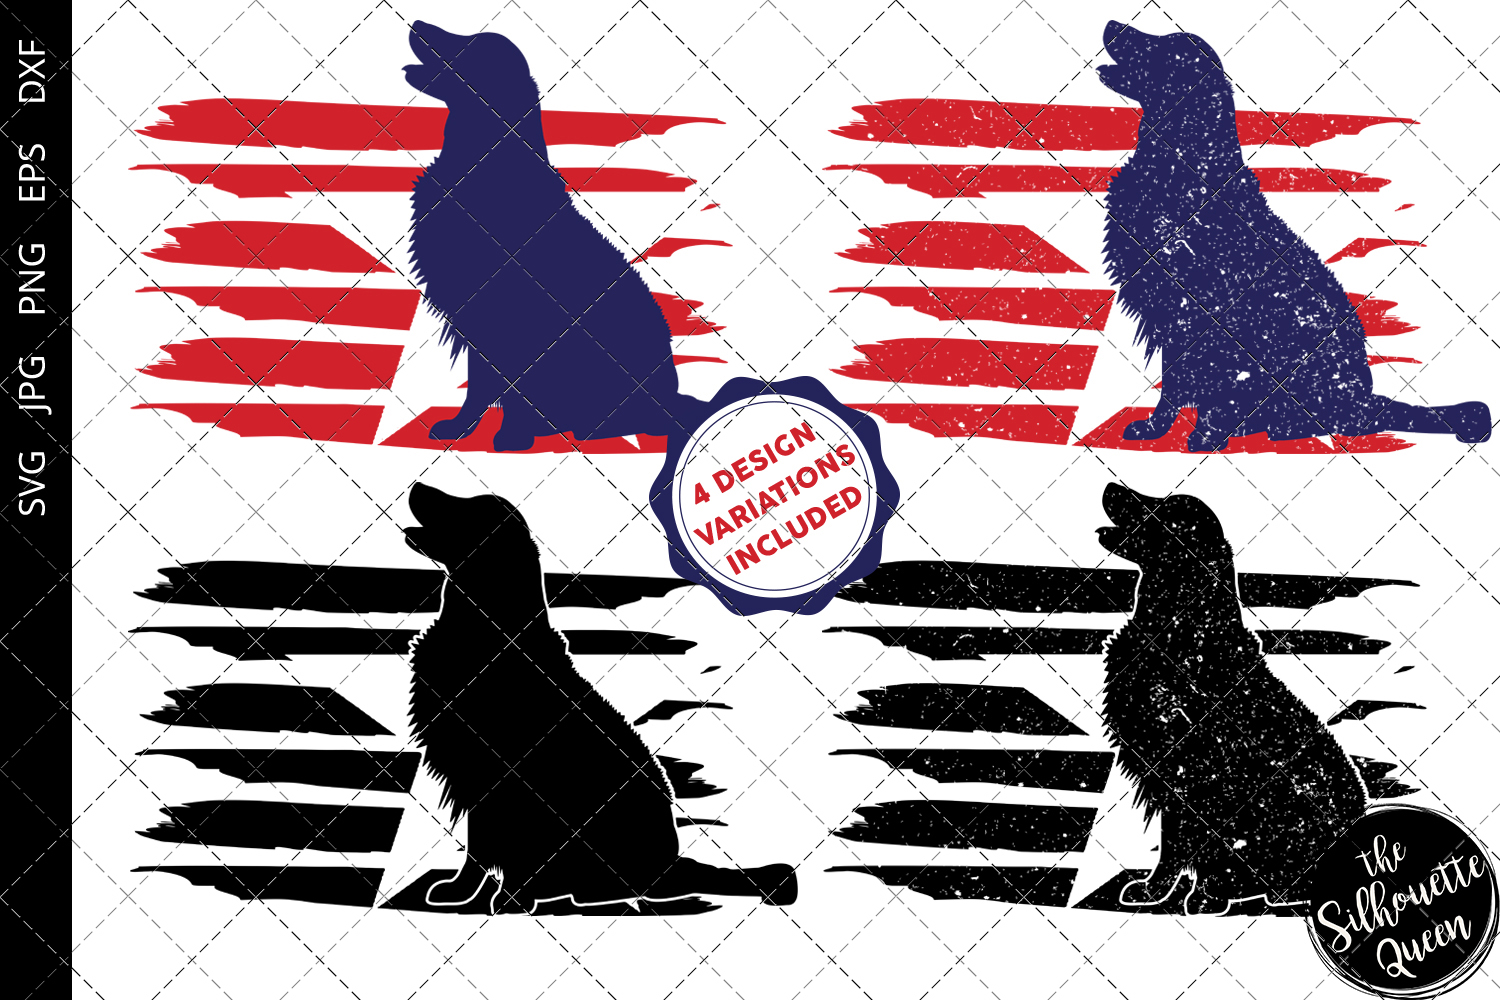 Download Free Golden Retriever Dog Flag Graphic By Thesilhouettequeenshop for Cricut Explore, Silhouette and other cutting machines.